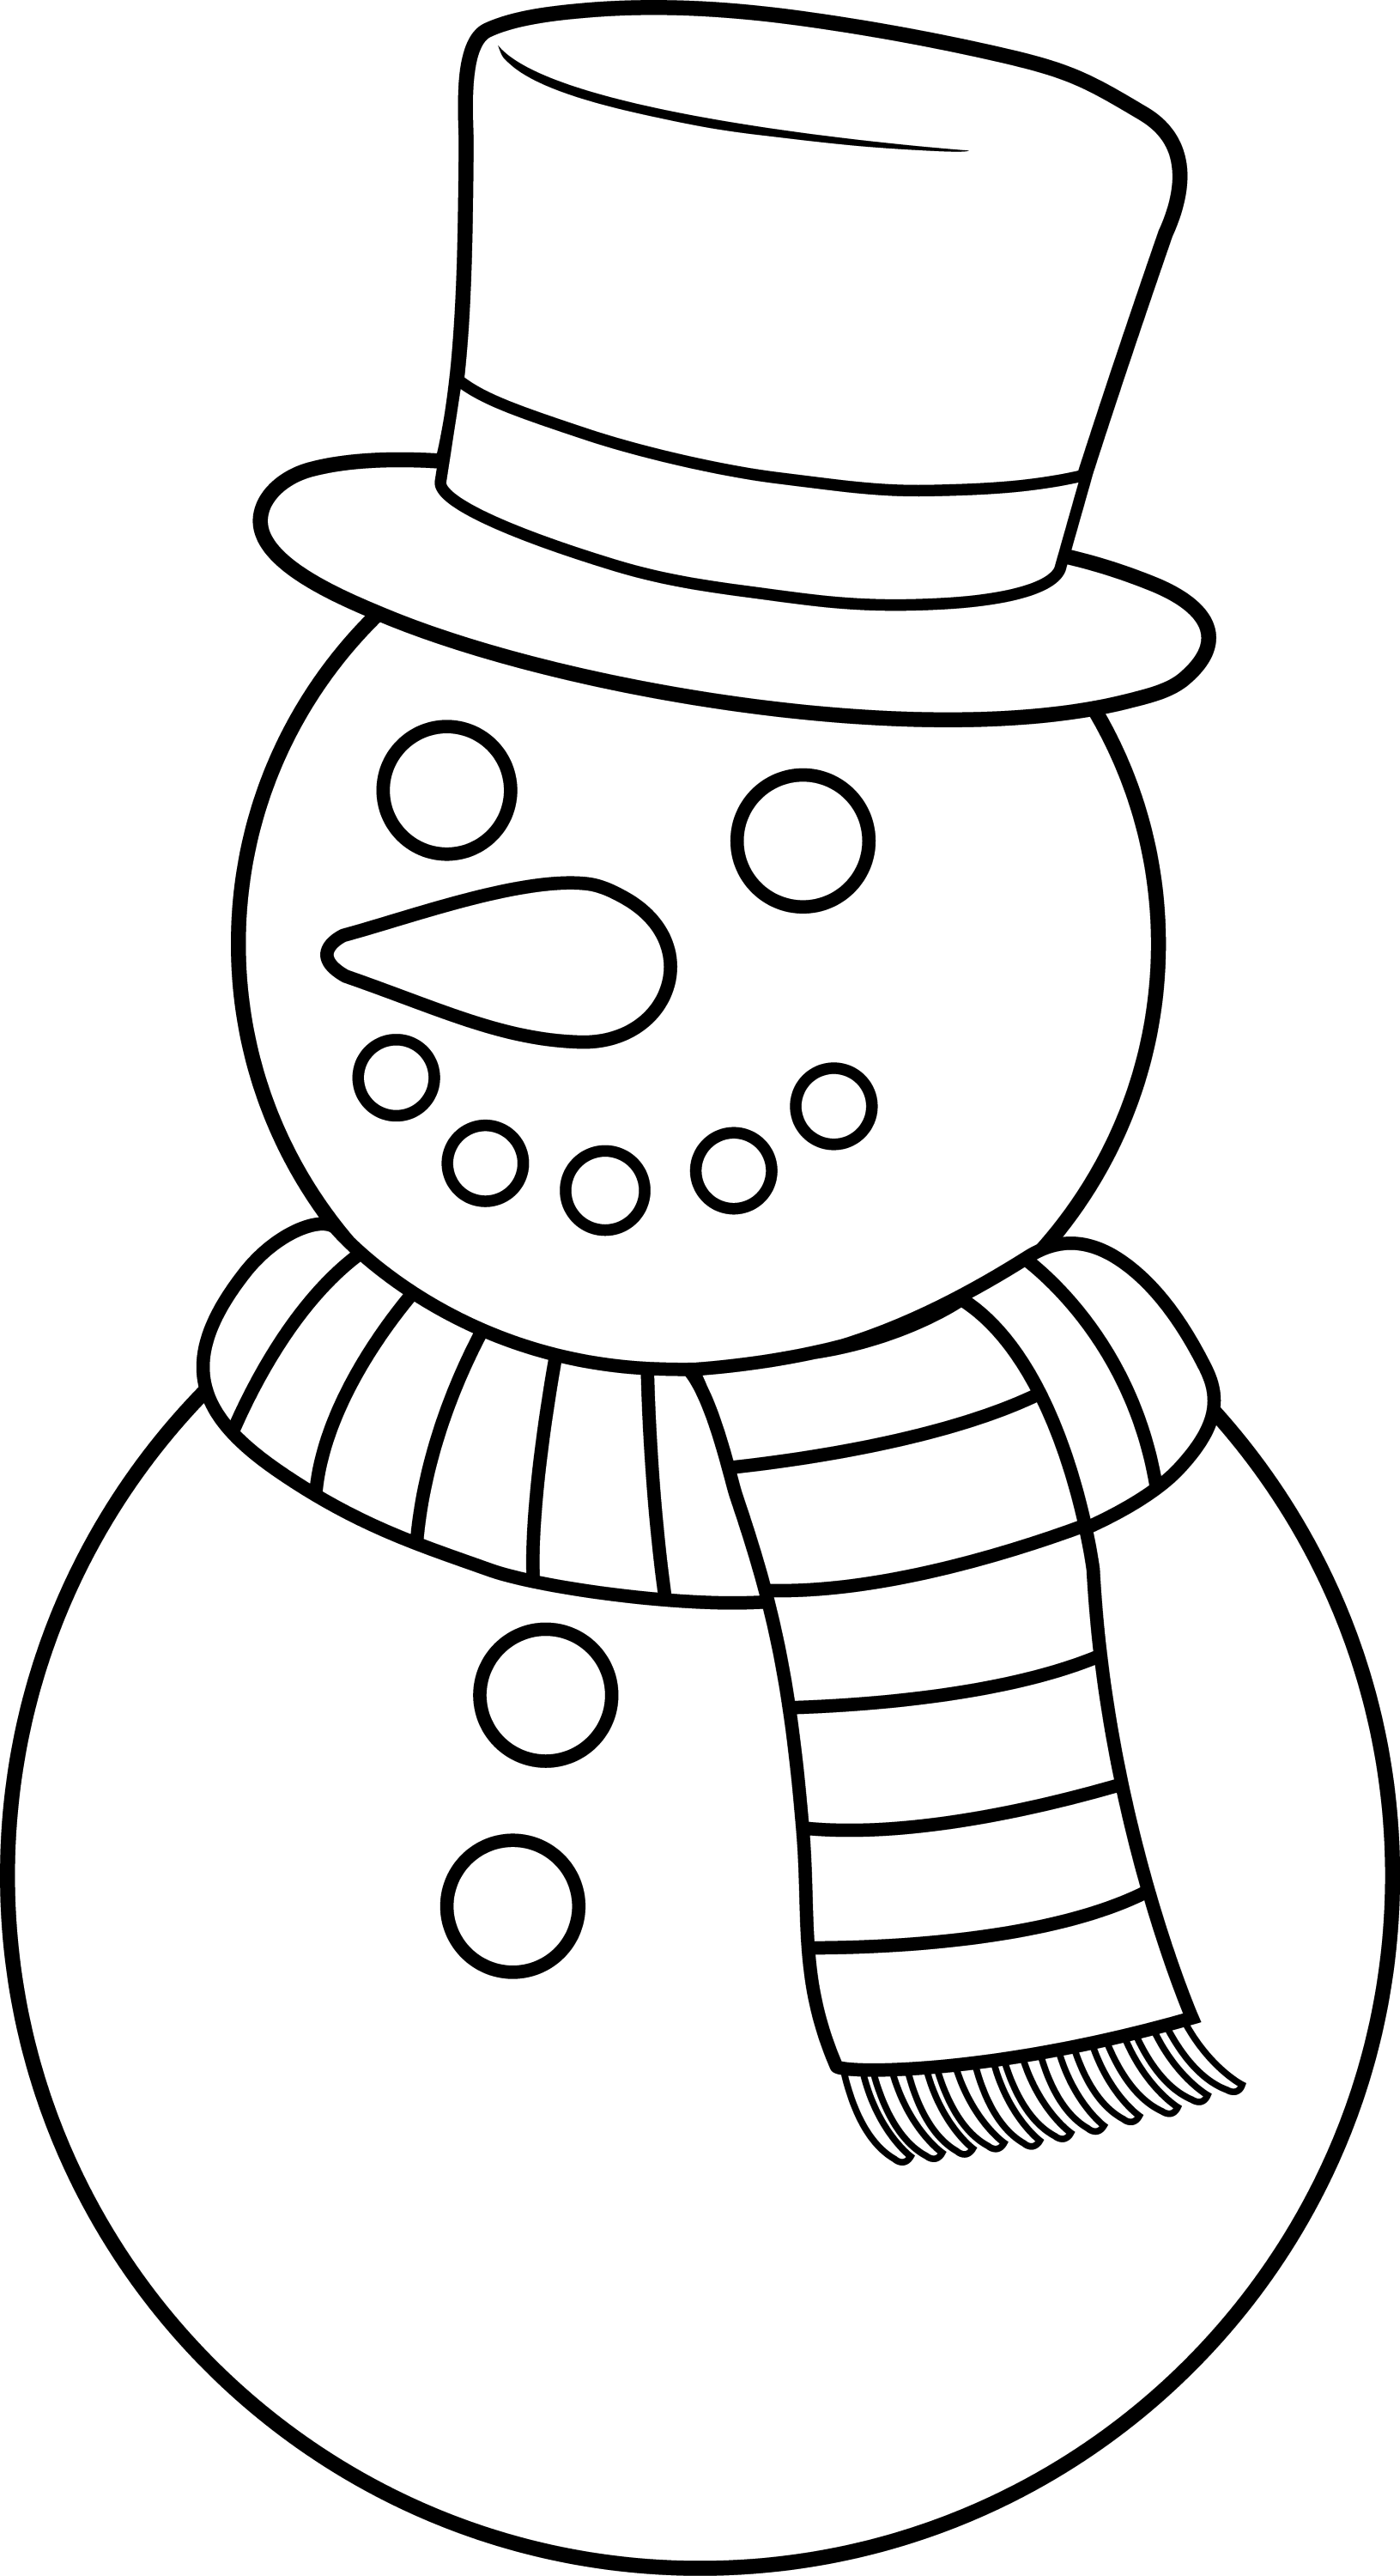 snowman coloring page colorable christmas snowman free clip art snowman coloring page